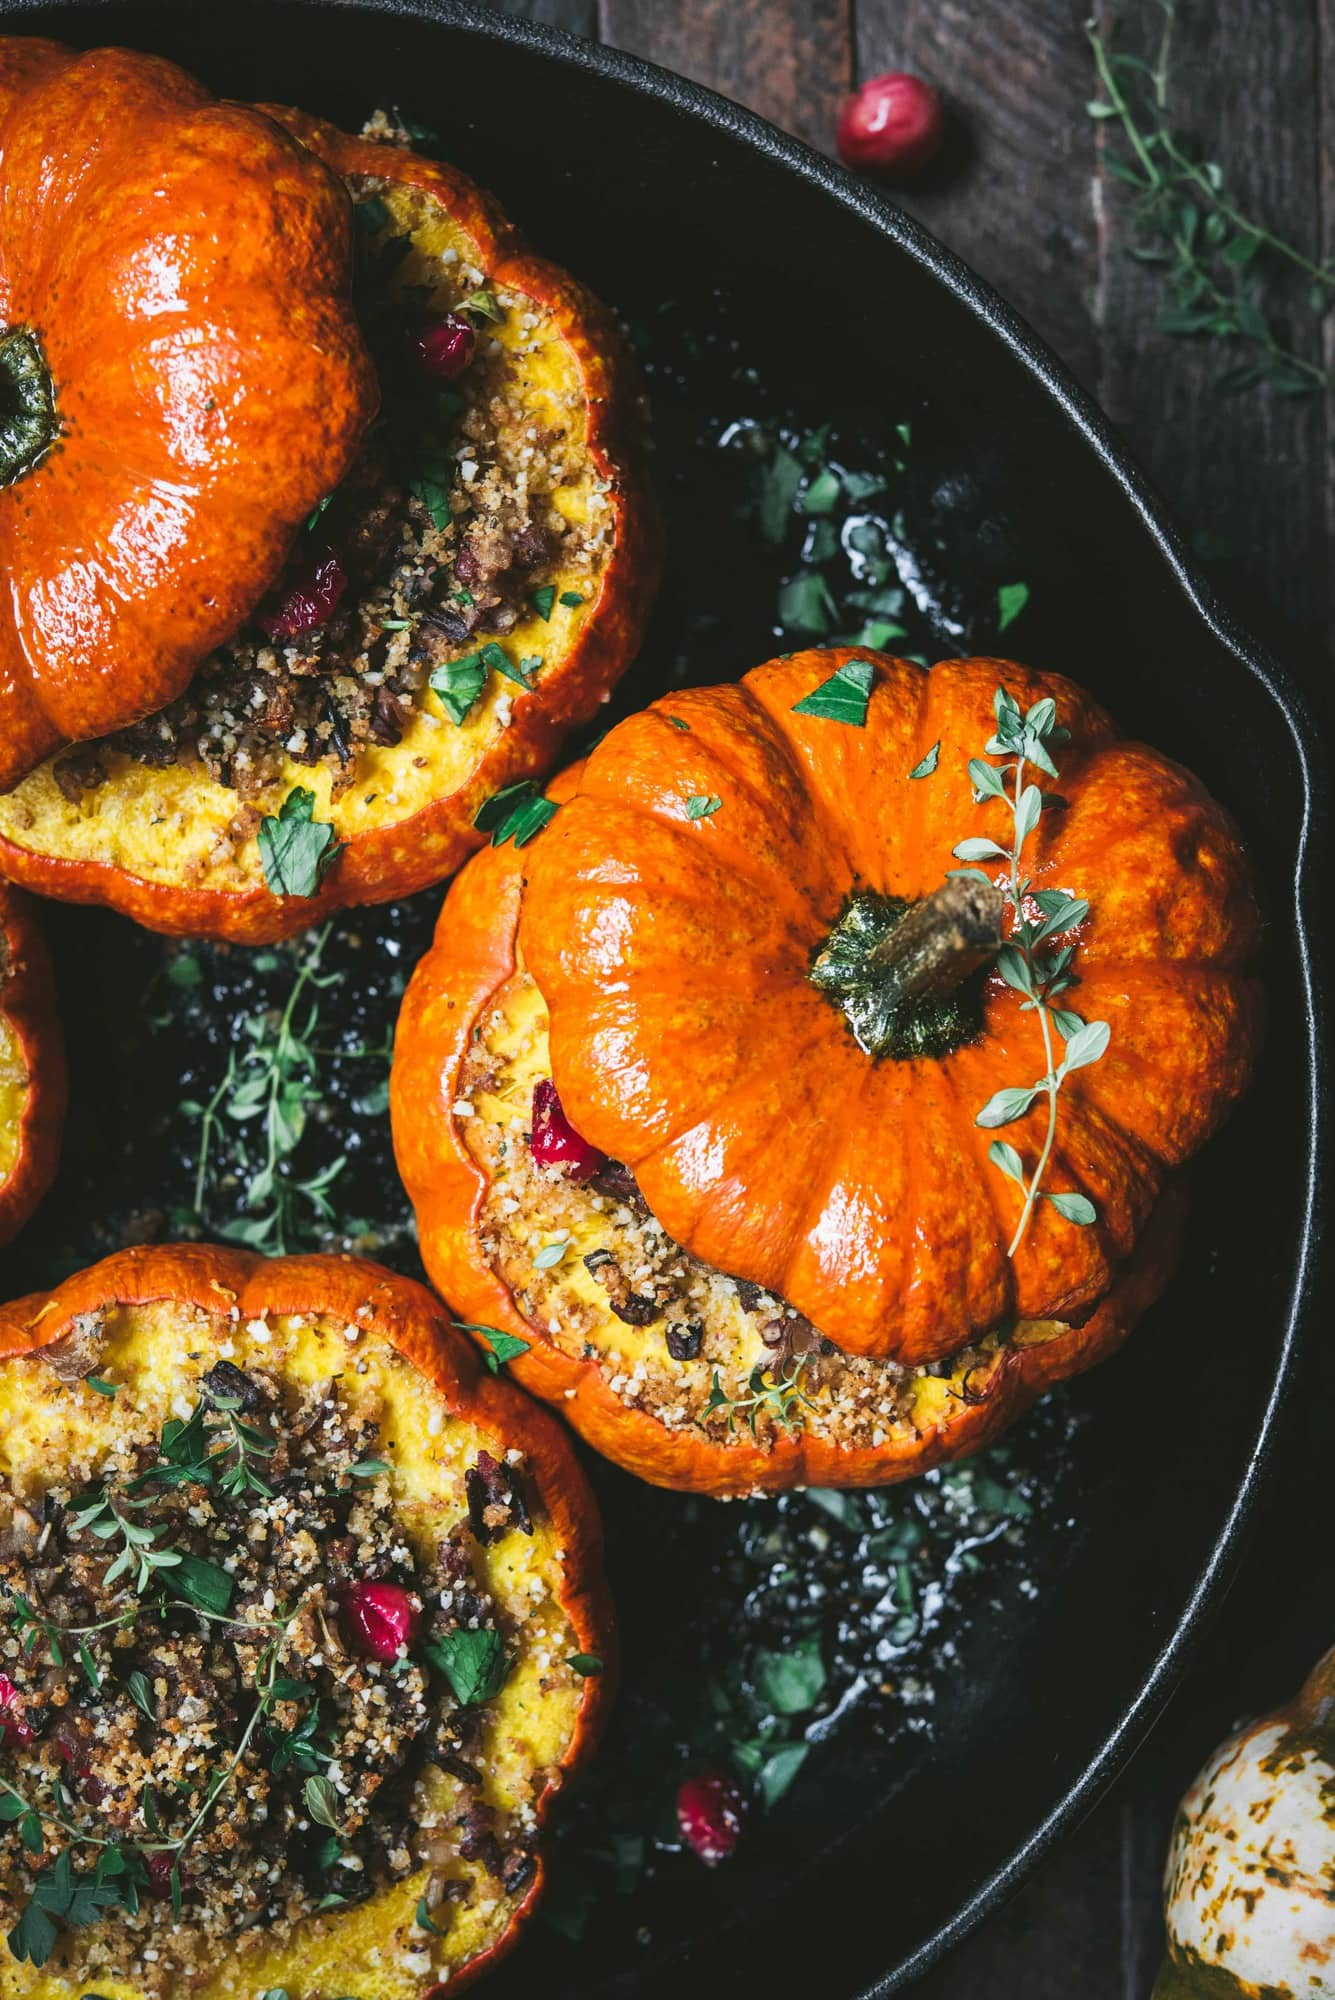 Close up view of Stuffed Mini Pumpkins with Wild Rice and Mushrooms in a cast iron skillet